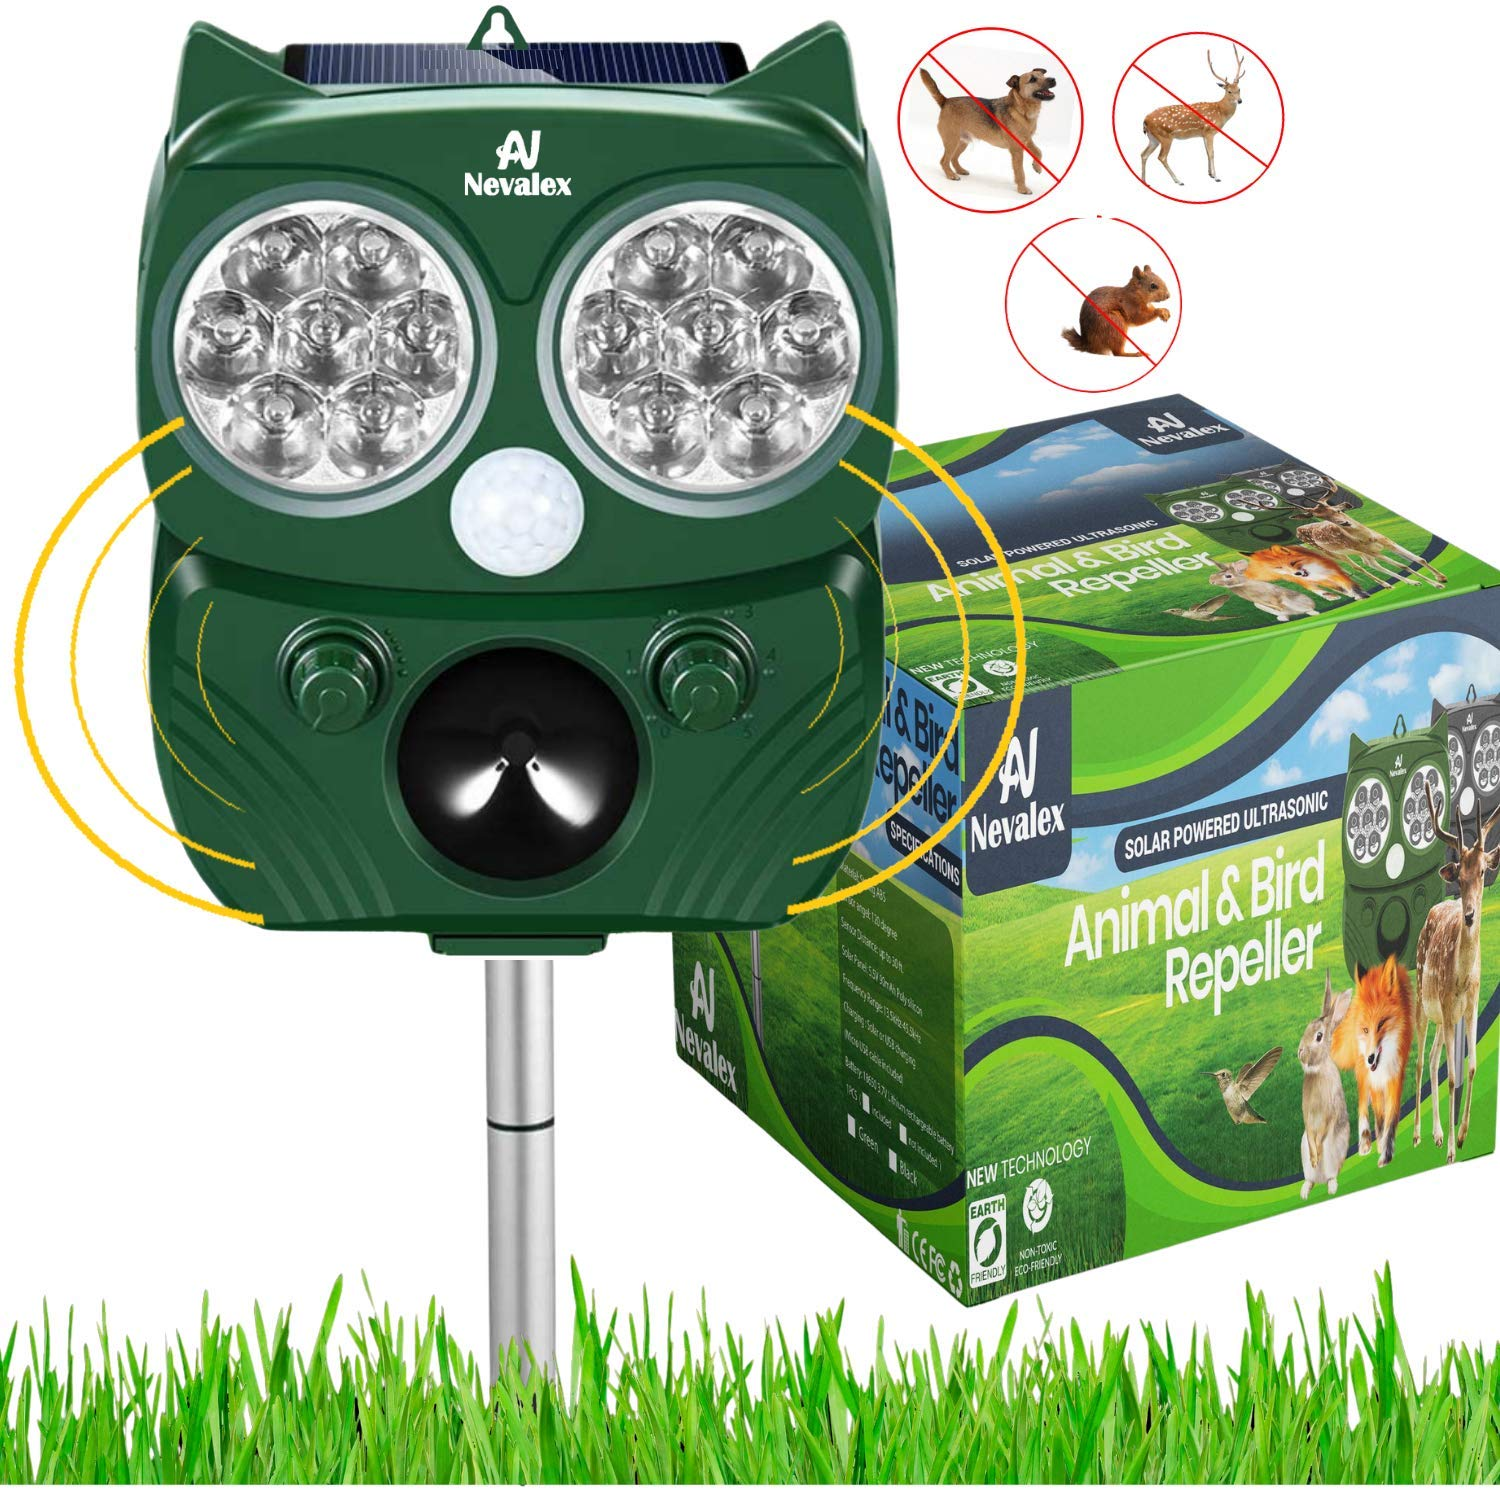 Nevalex Ultrasonic Animal Repeller Solar Powered with Sound Control